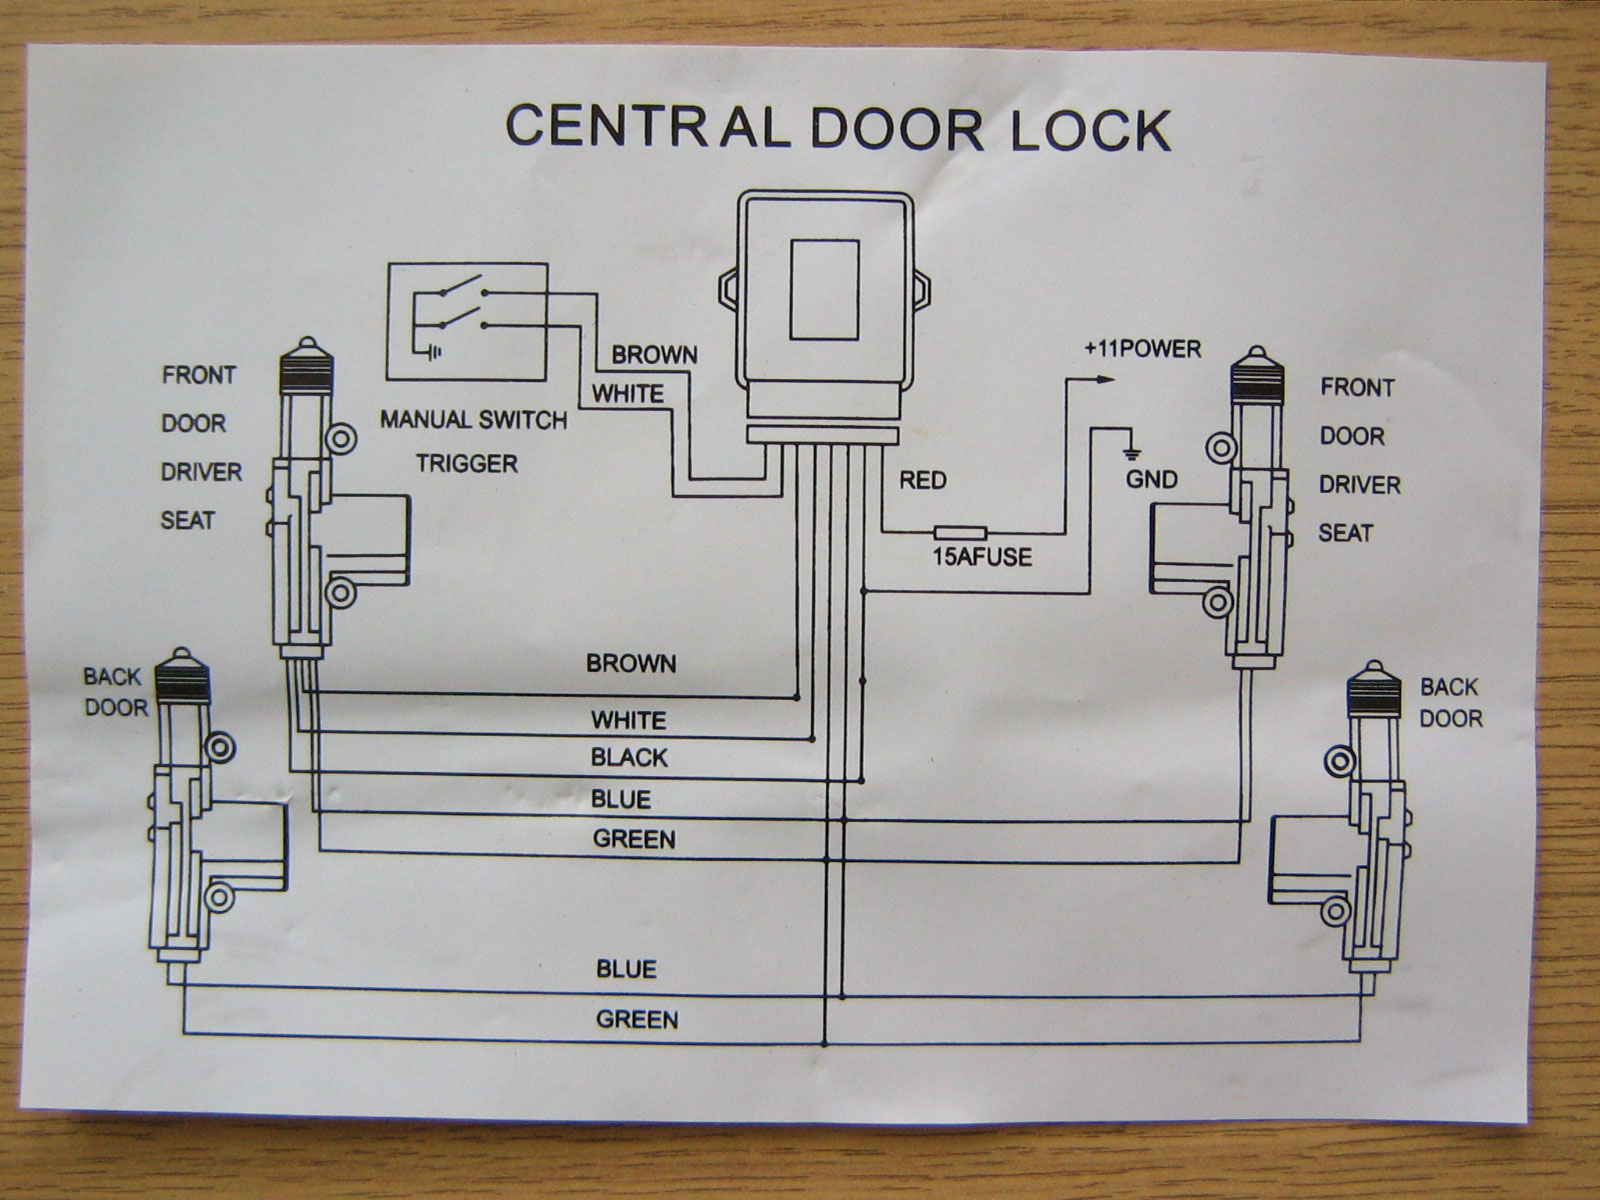 b&d controll a door 4 manual